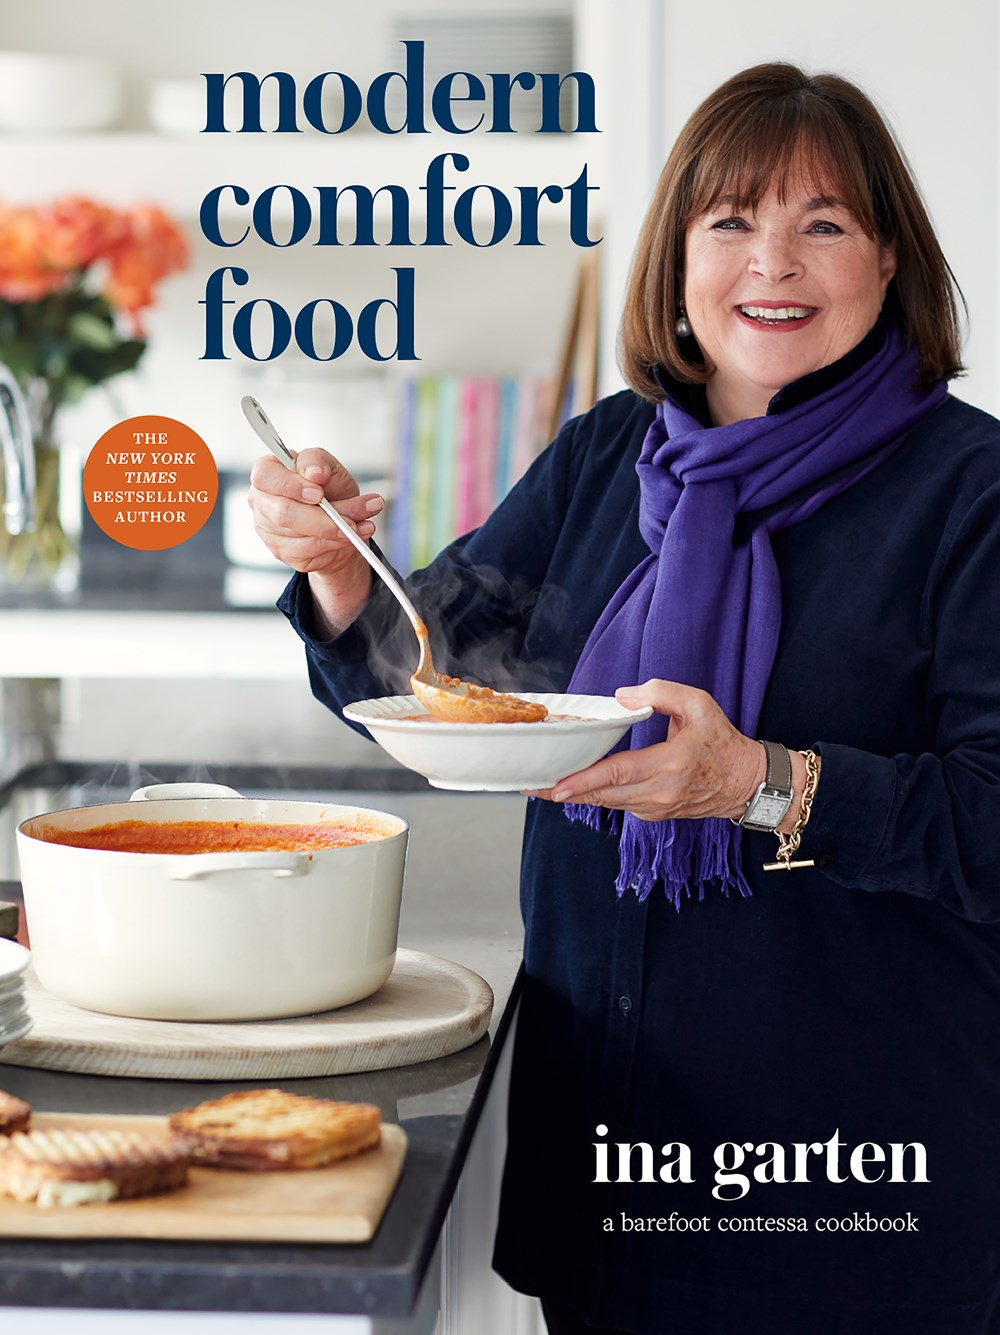 Cooking Best-Sellers, May 2021 | The Most In-Demand in Libraries & Bookstores